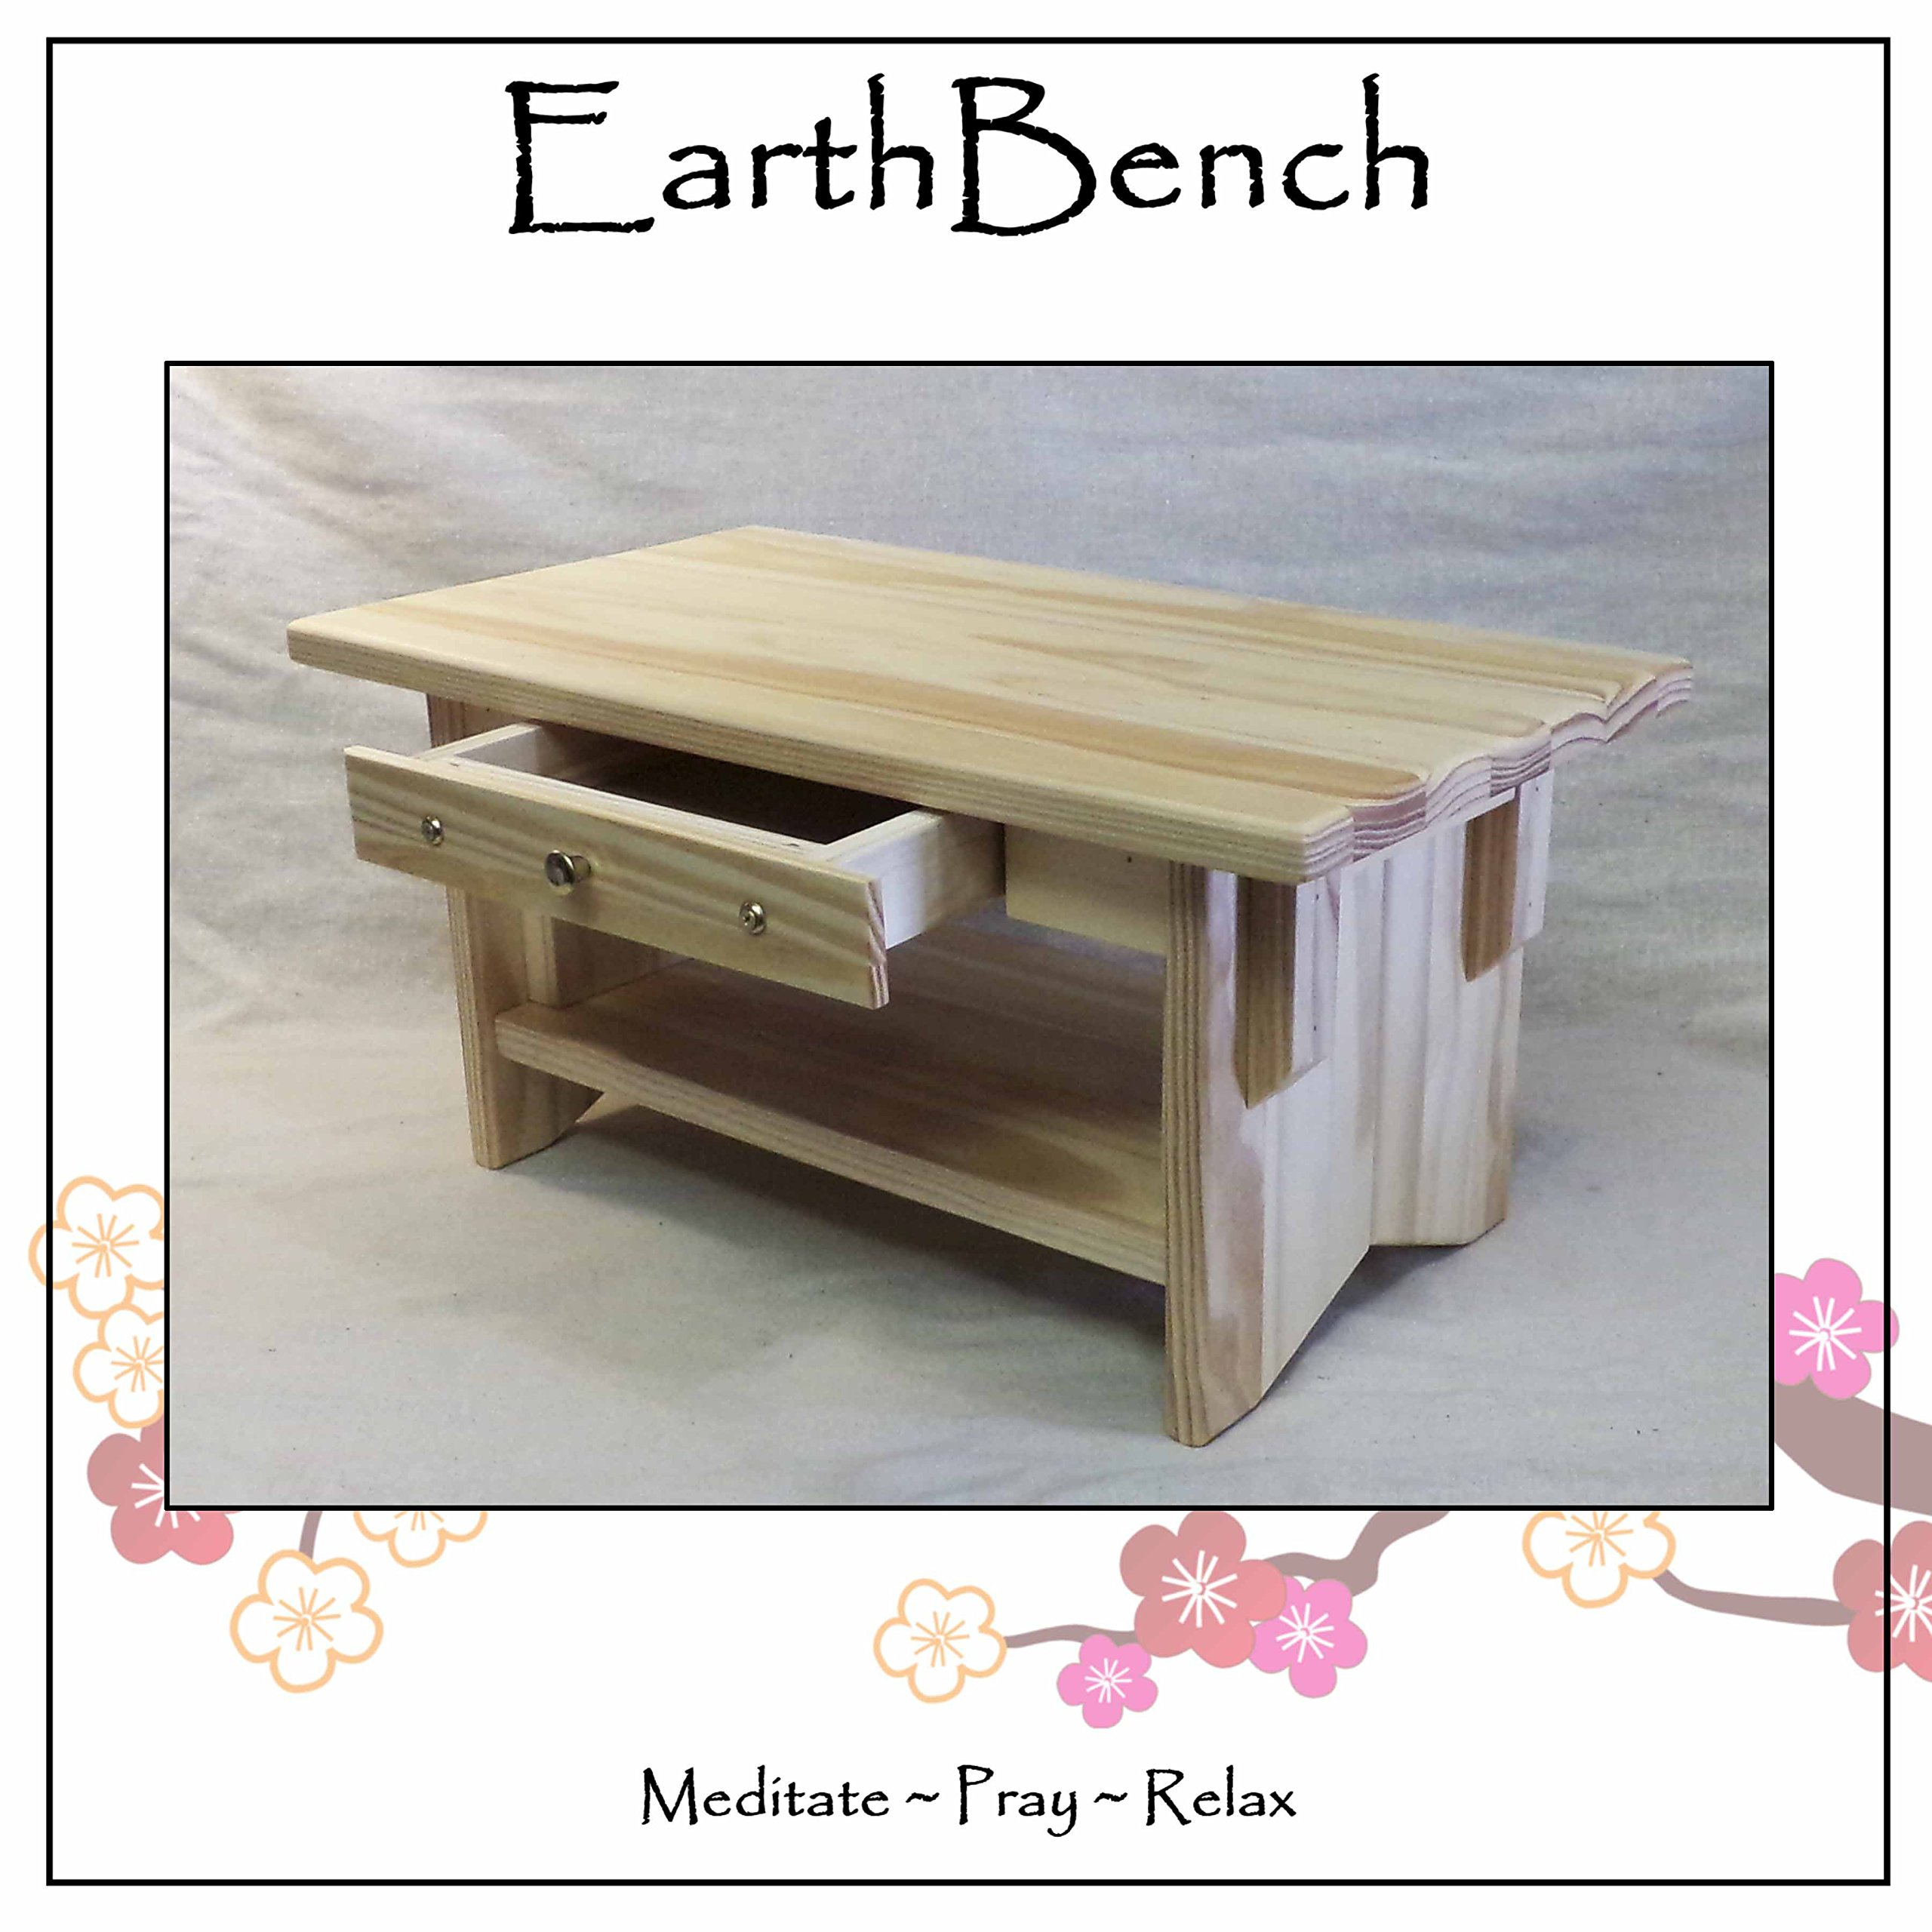 Personal Altar Table w/ Display Shelf: 20''×11''×10'' tall ~ EarthBench (Pine 10'' w/ Drawer)